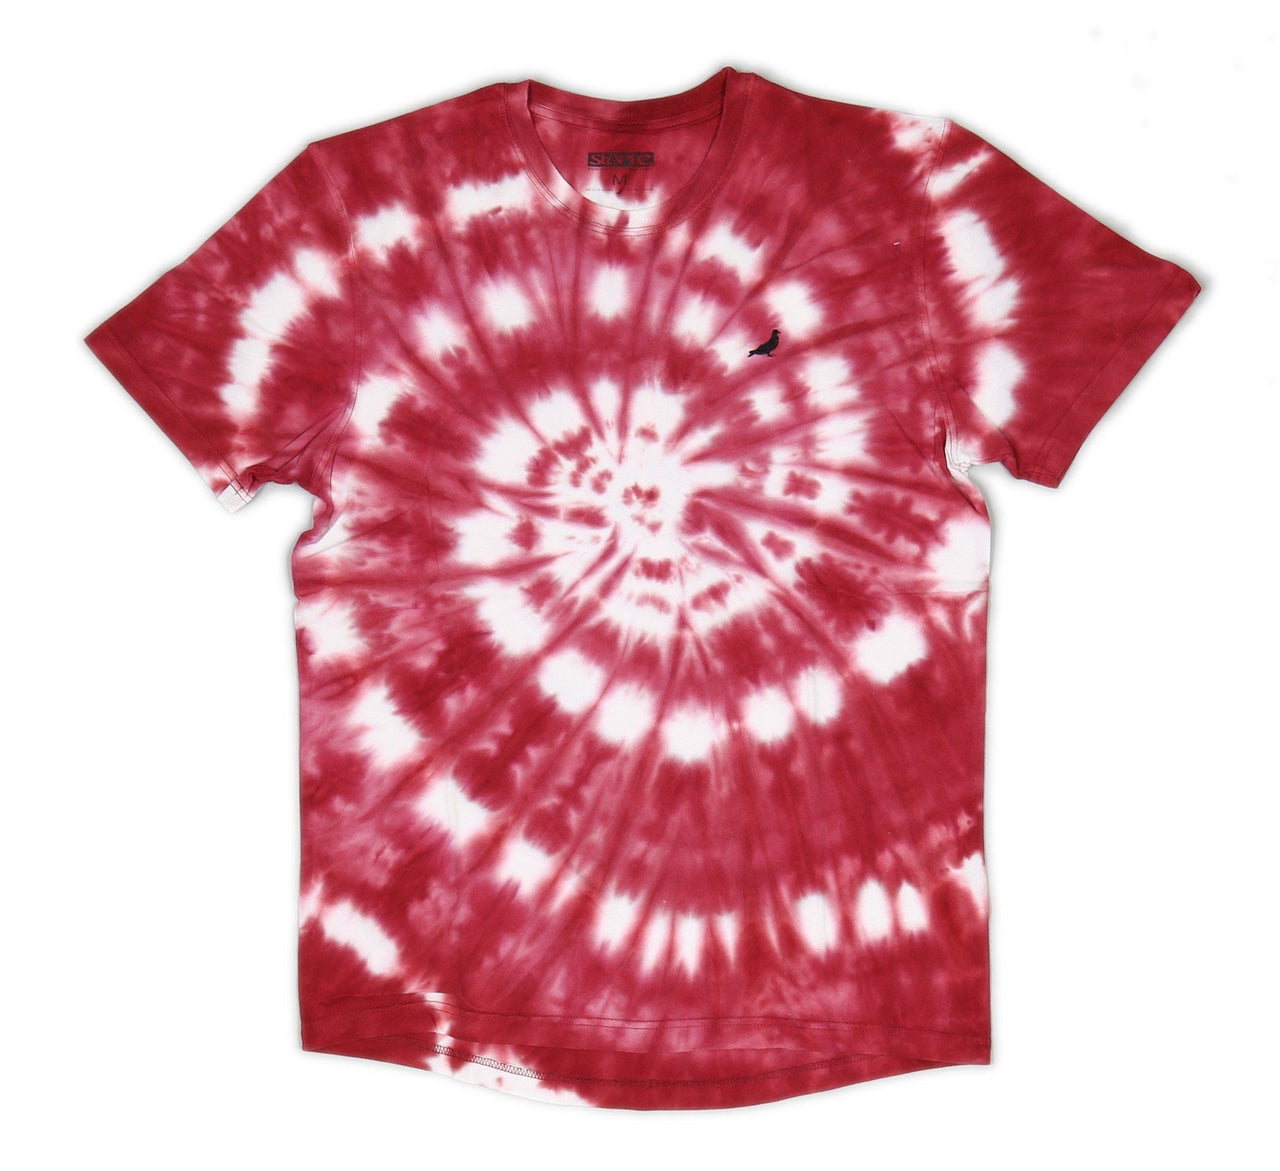 GRAILS TIE DYE TEE, RED